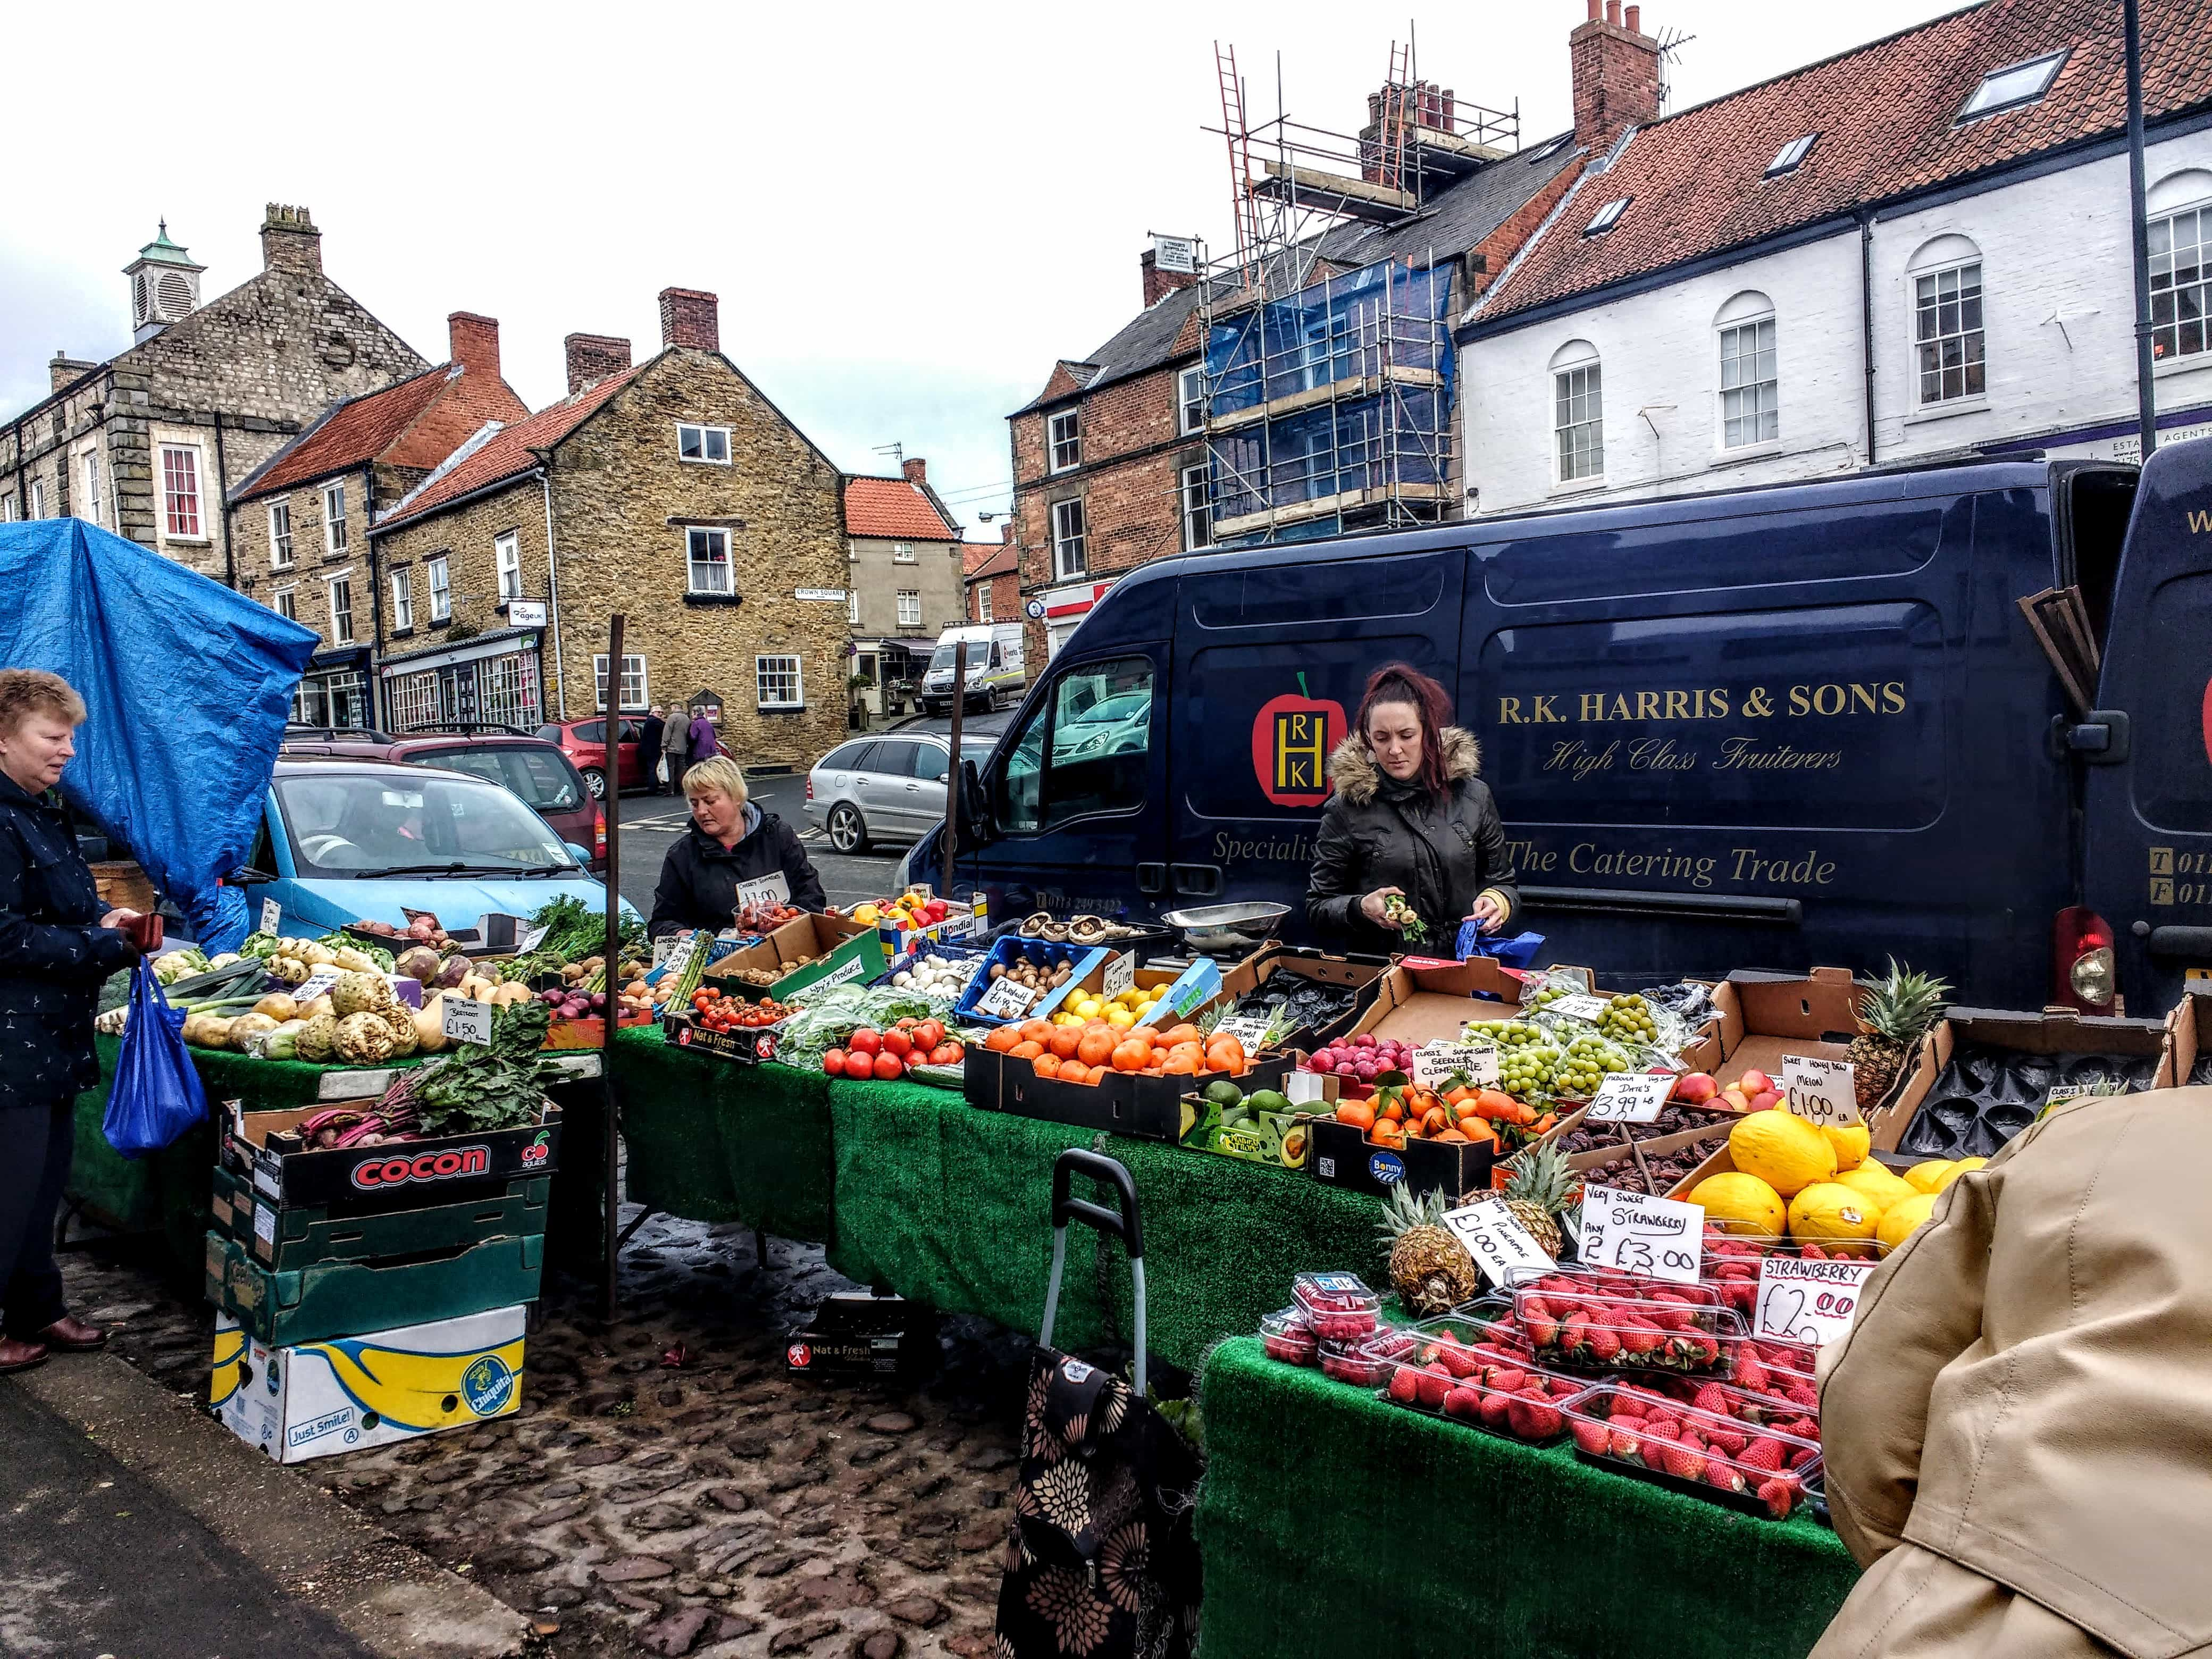 Yorkshire market town VAN SELLING FRUIT AND VEG IN Yorkshire